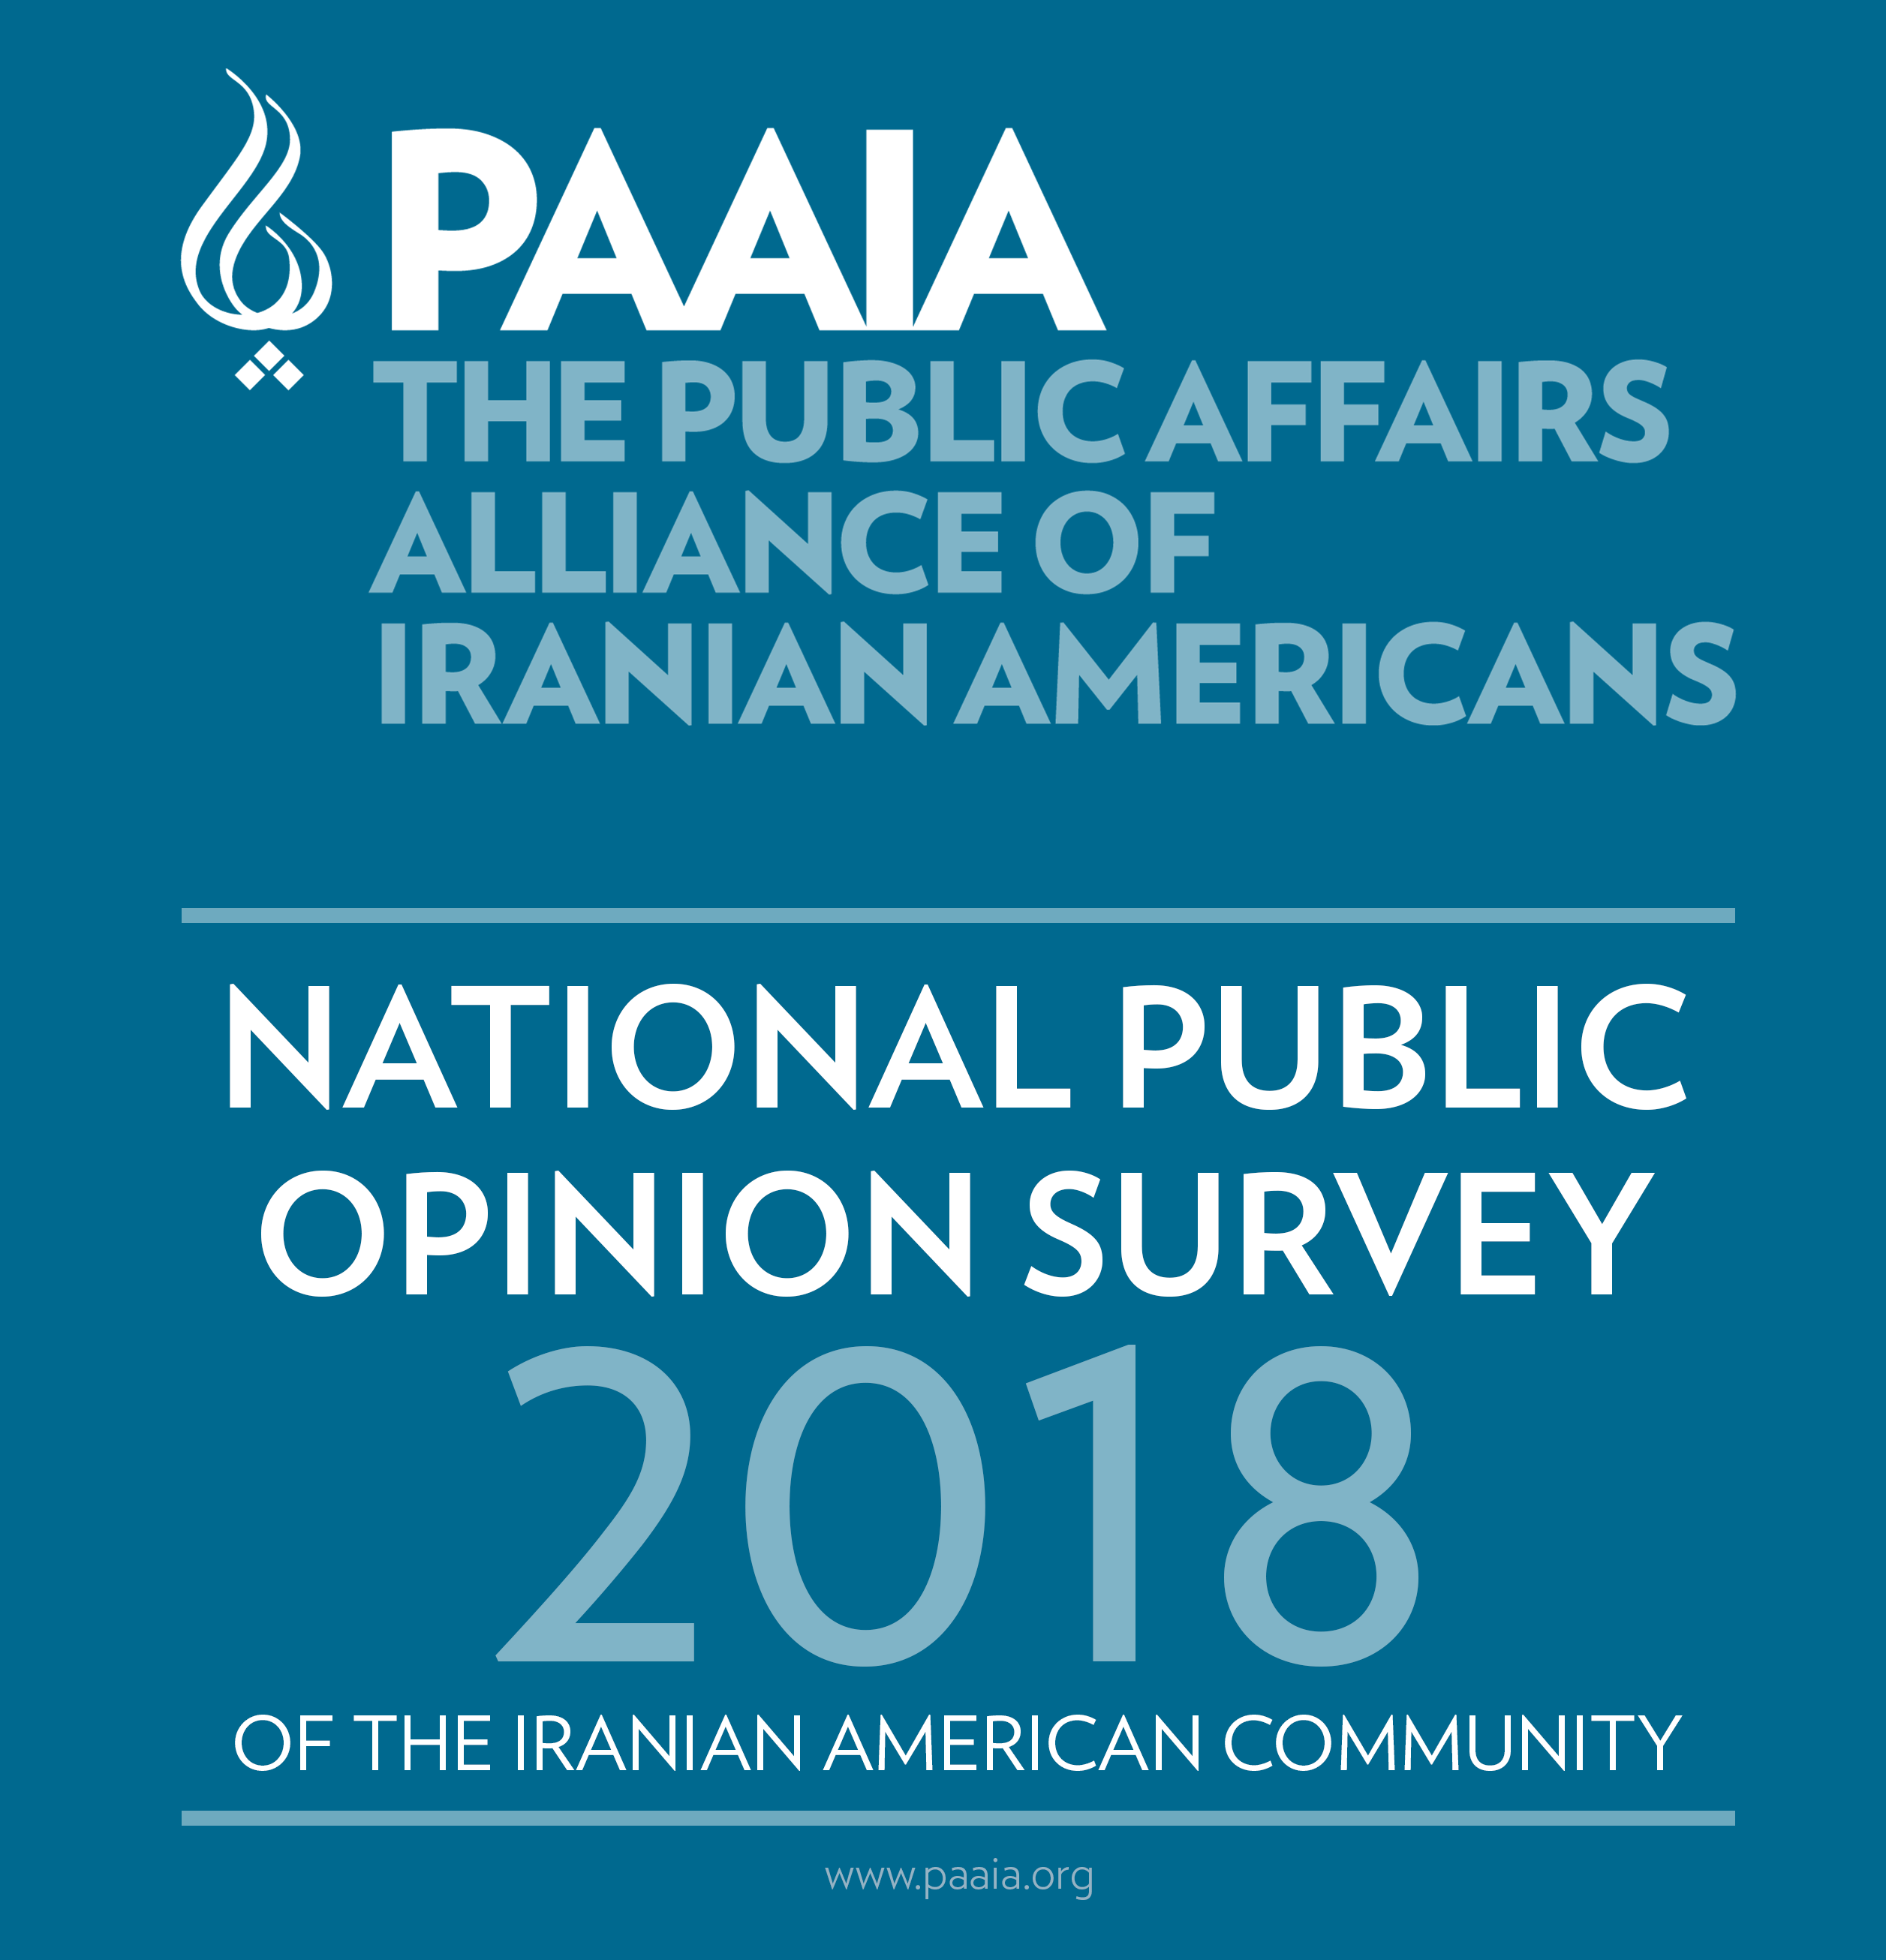 PAAIA Releases 2018 National Public Opinion Survey of